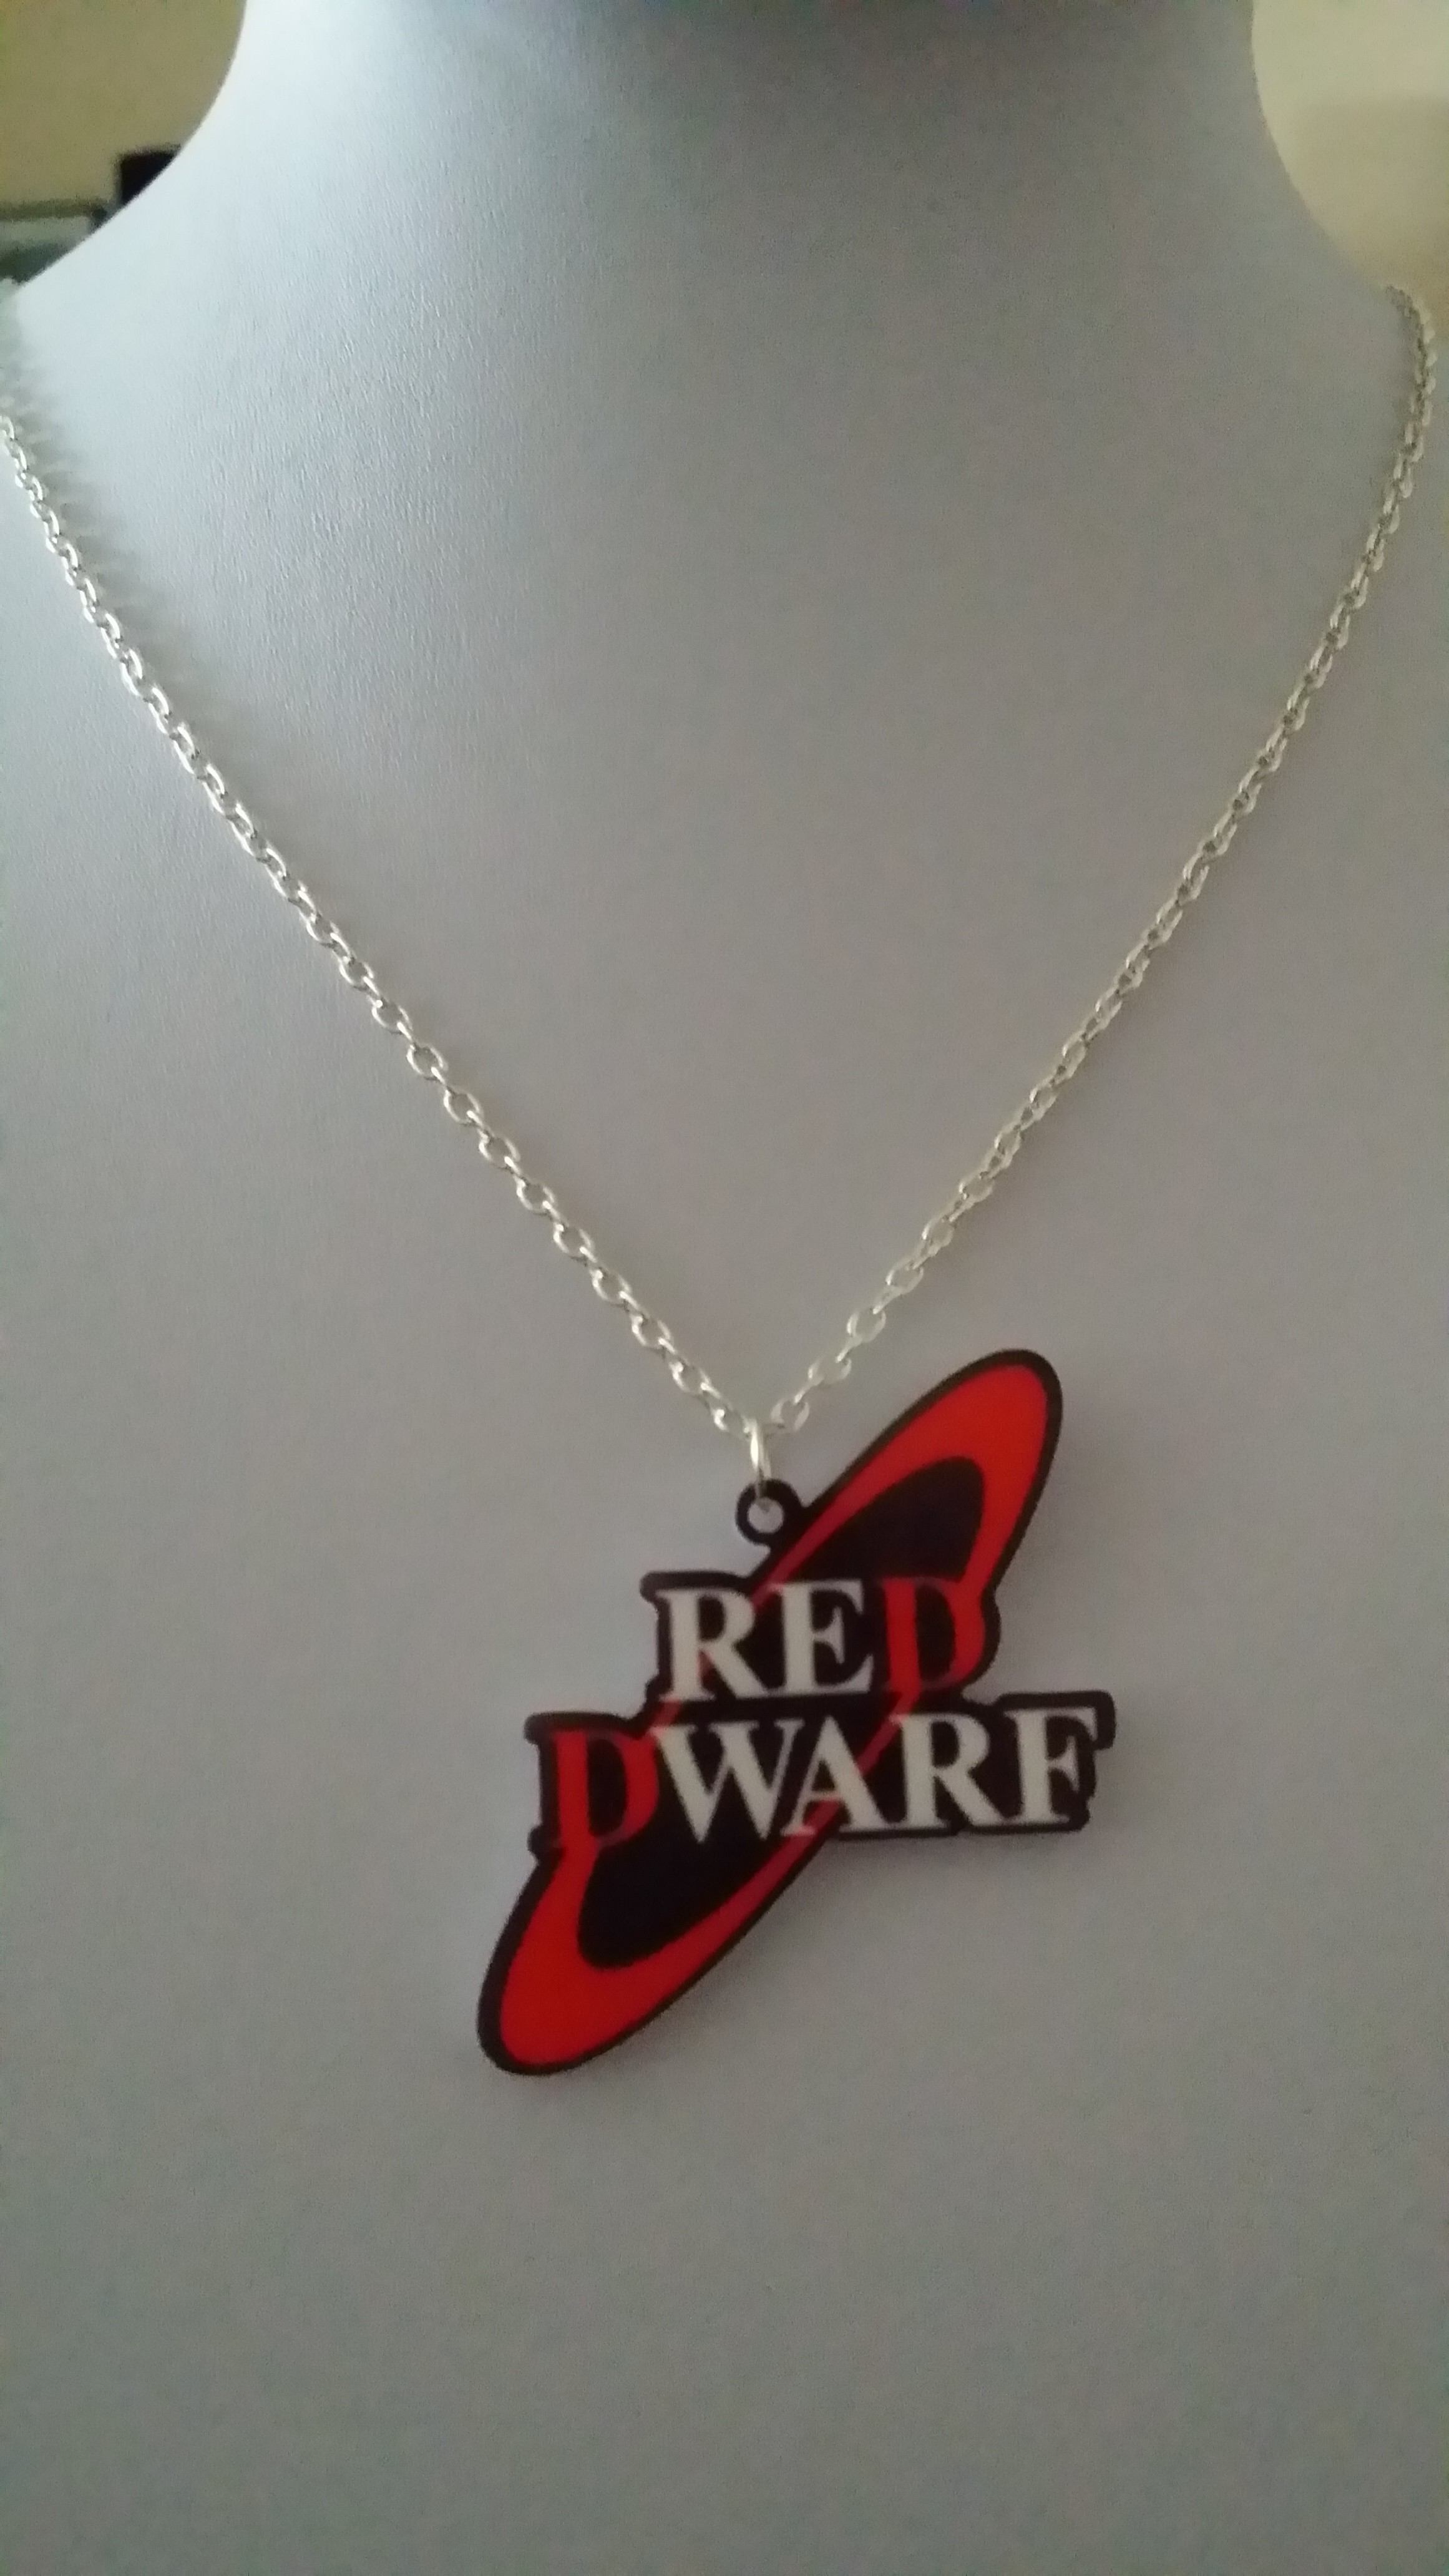 Red Dwarf Necklace